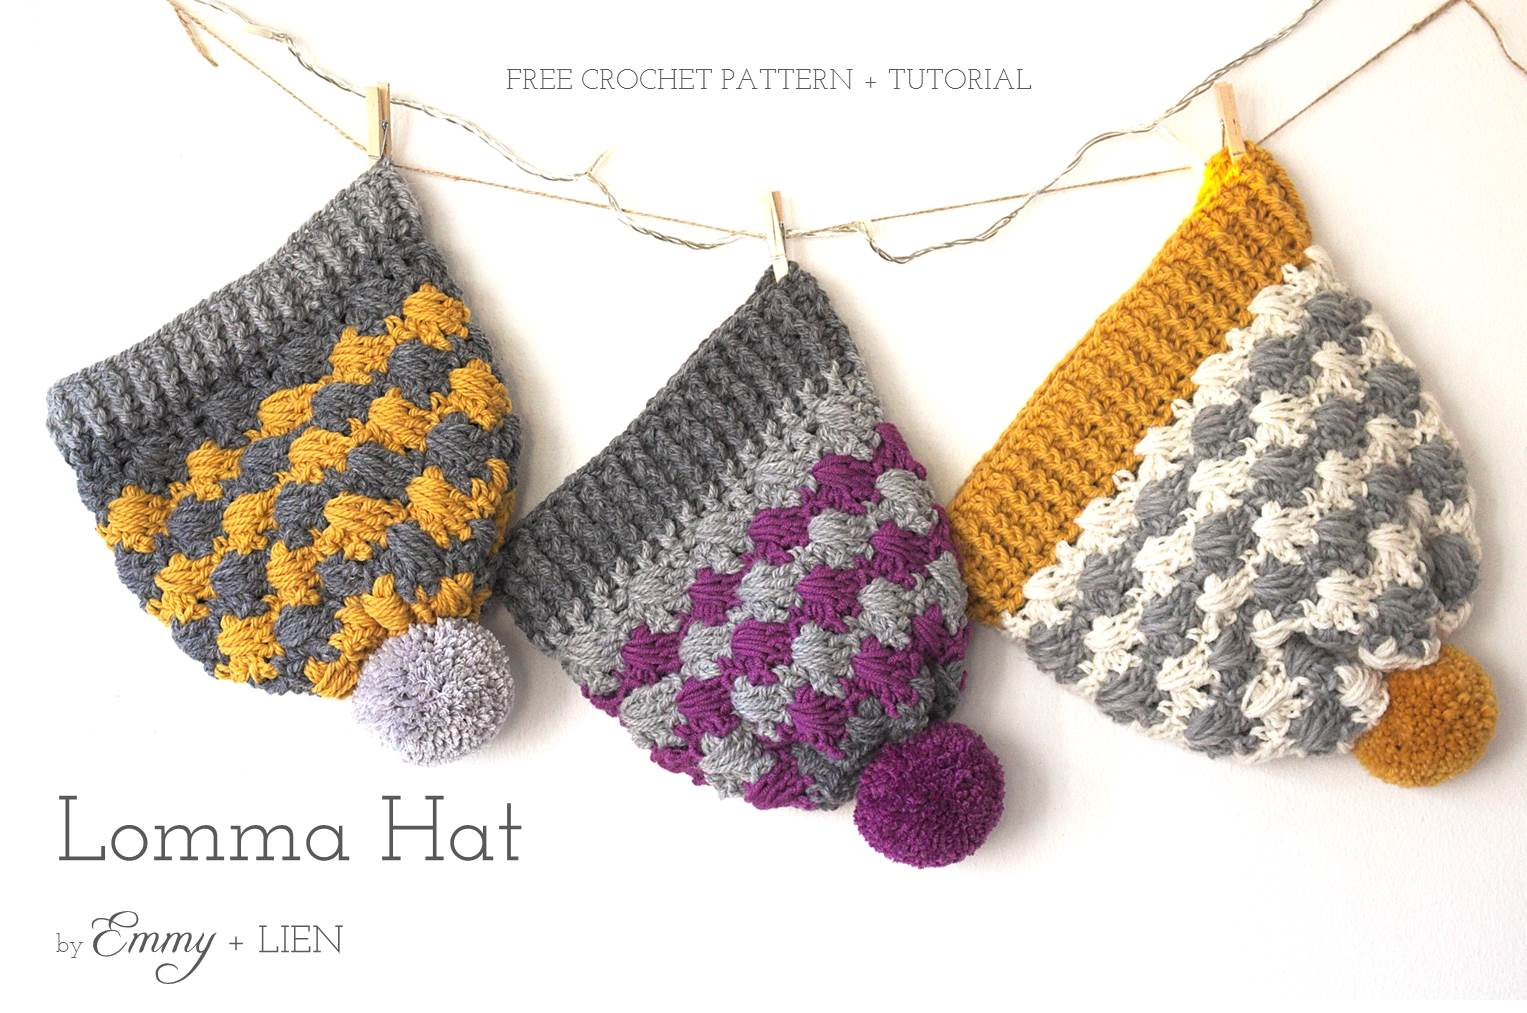 Lomma Hat | Free pattern & tutorial by Emmy + LIEN